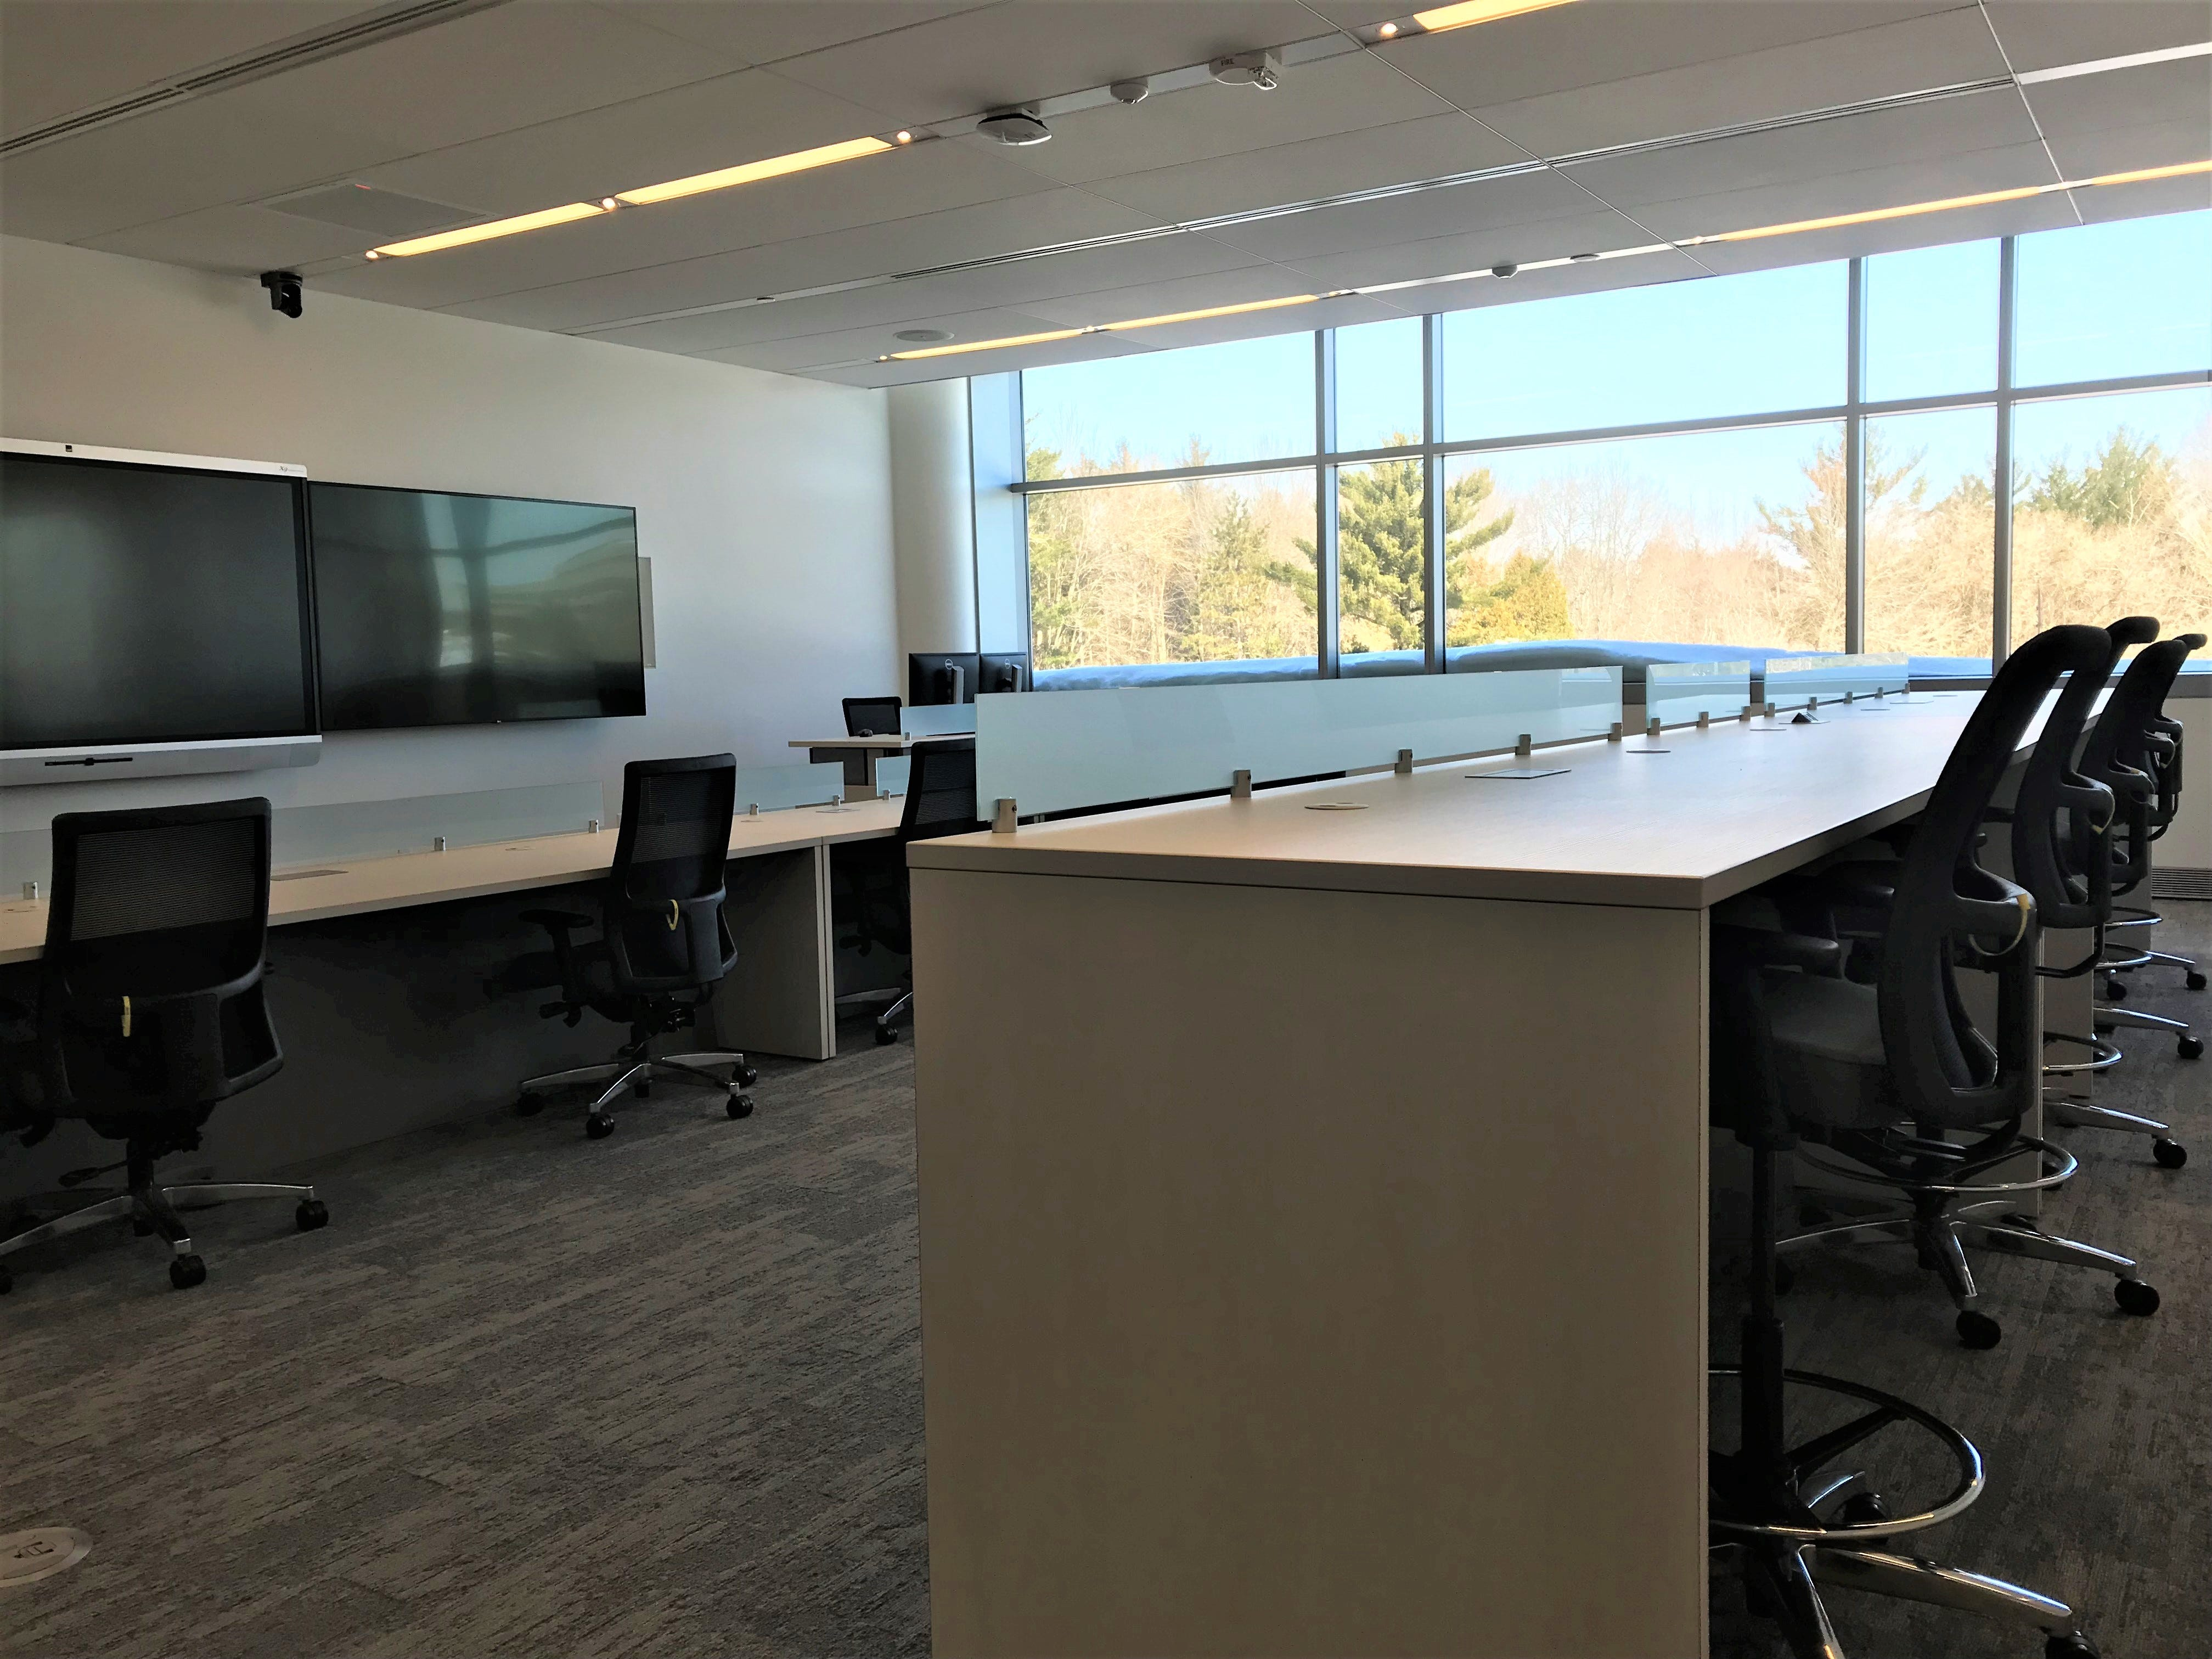 Employees can use rooms set up for presentations in the new Sentry building.